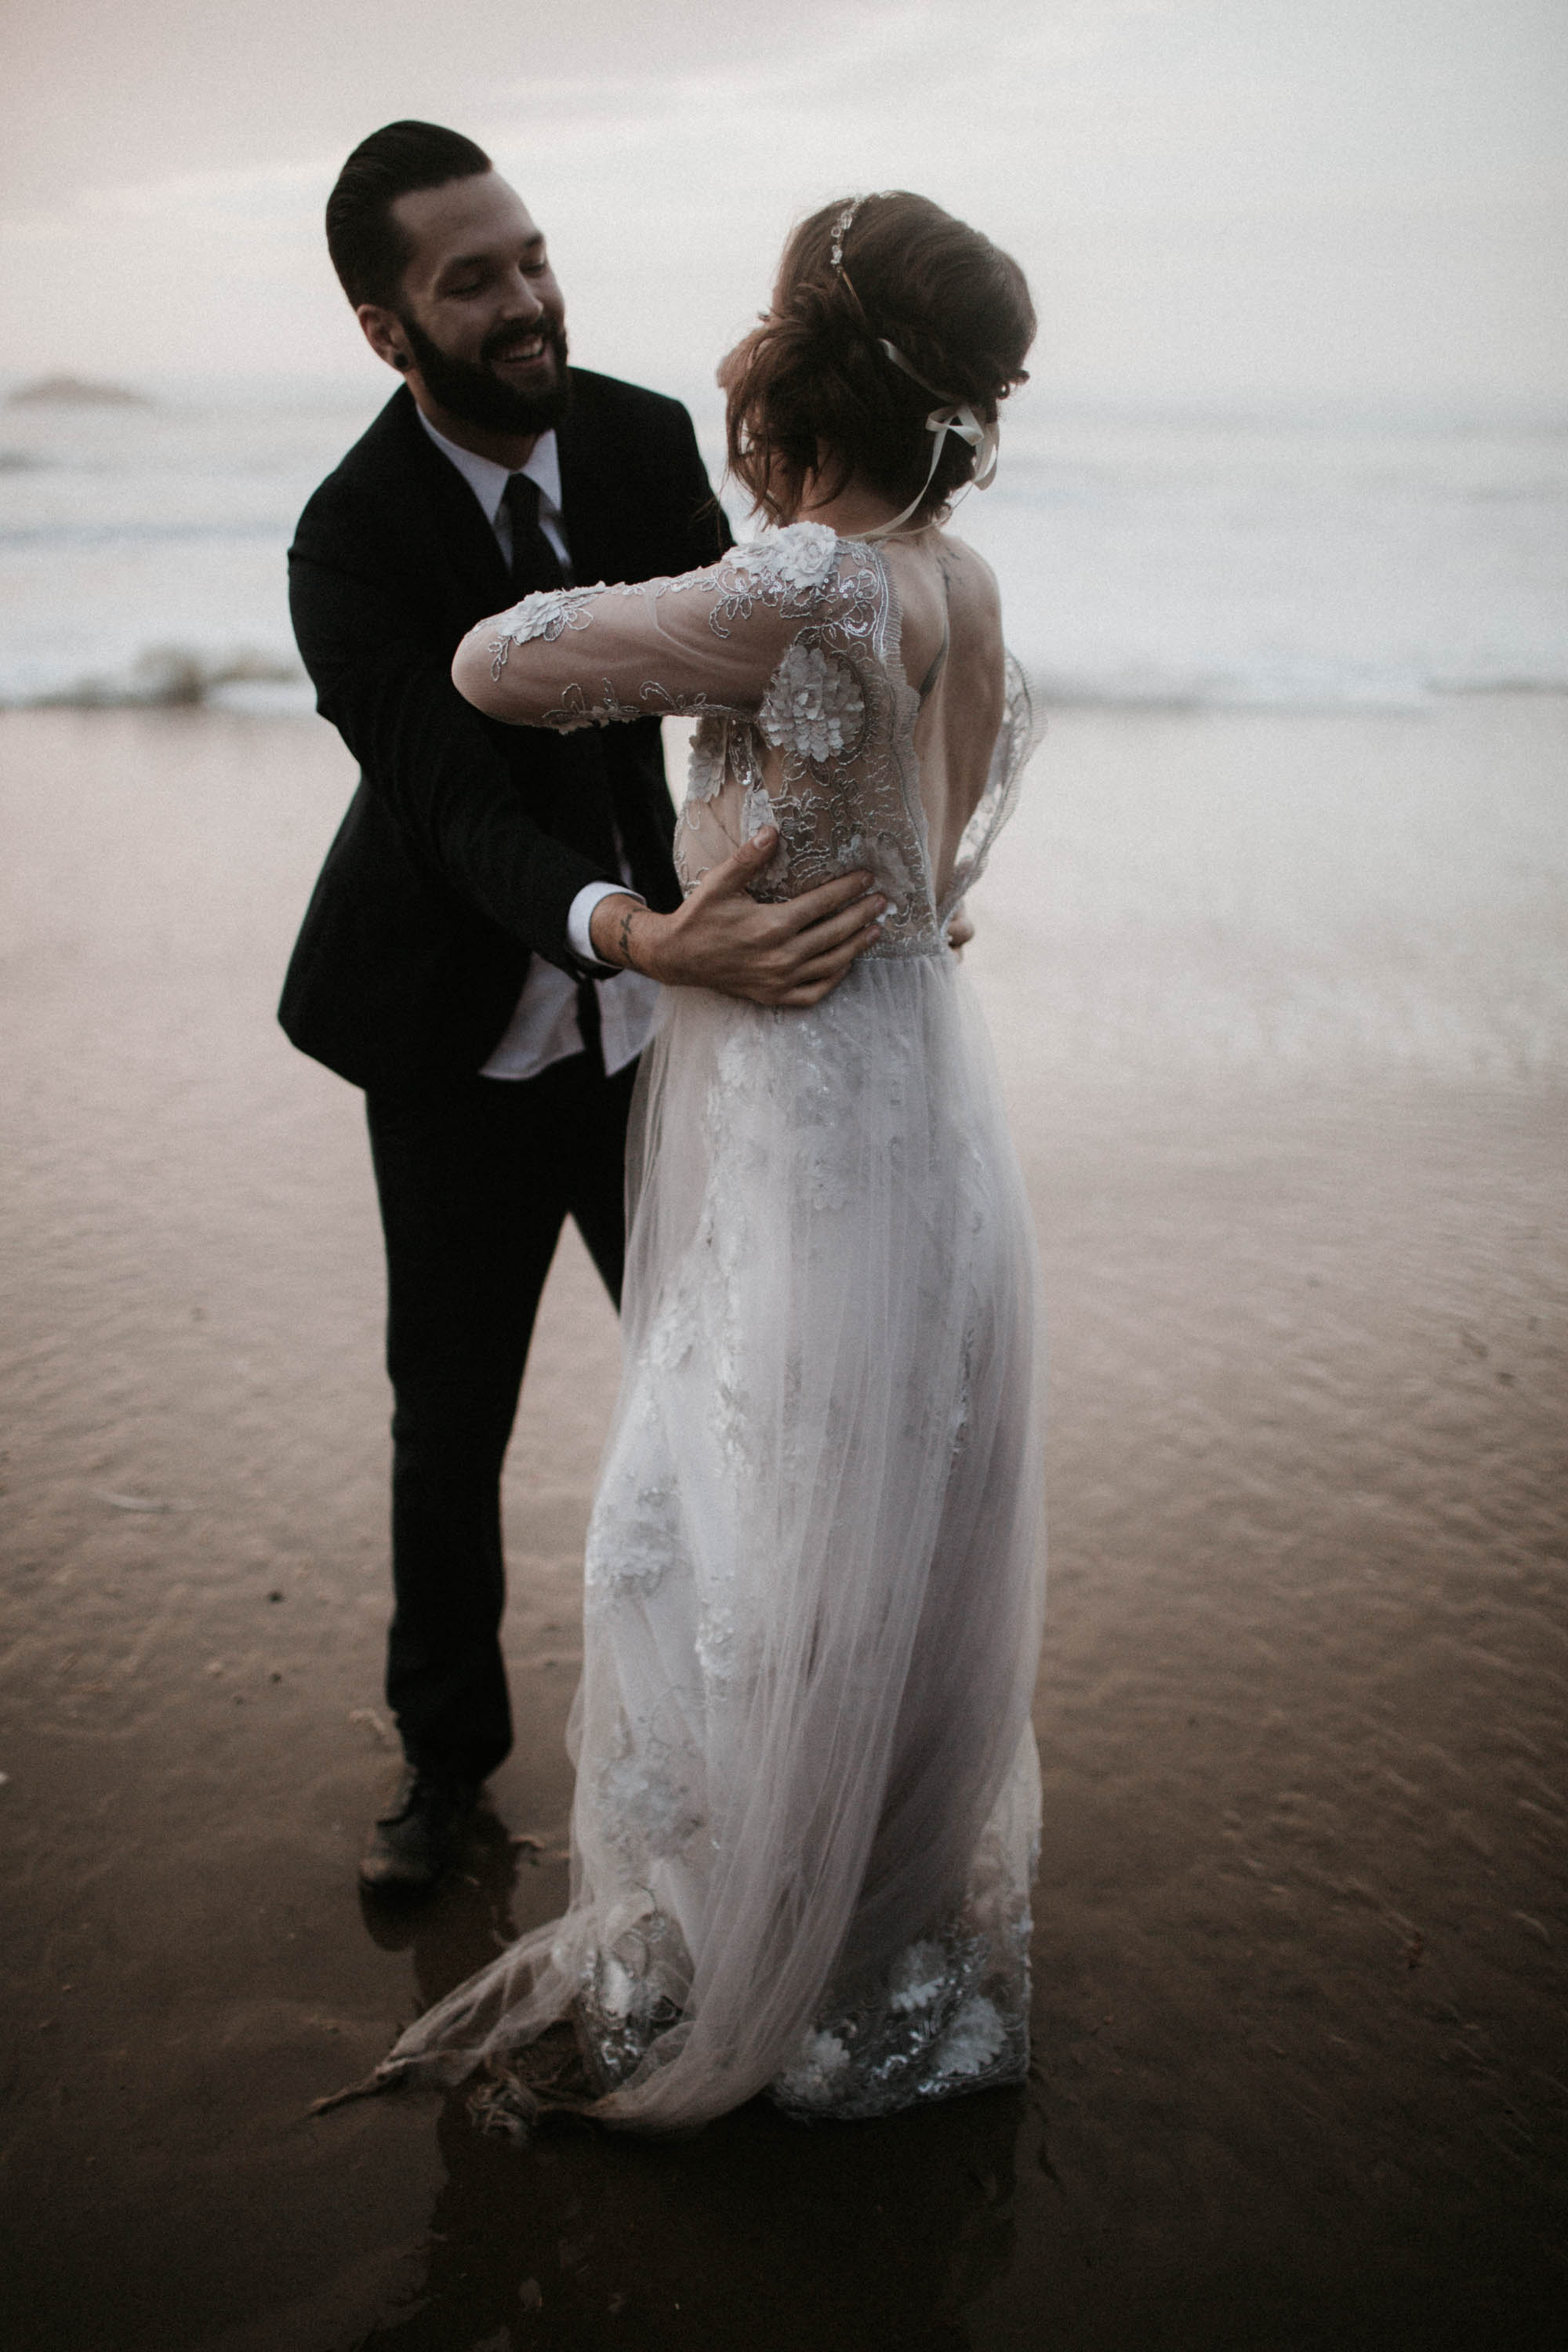 canonbeach_elopment_weddingphotographer-70.jpg